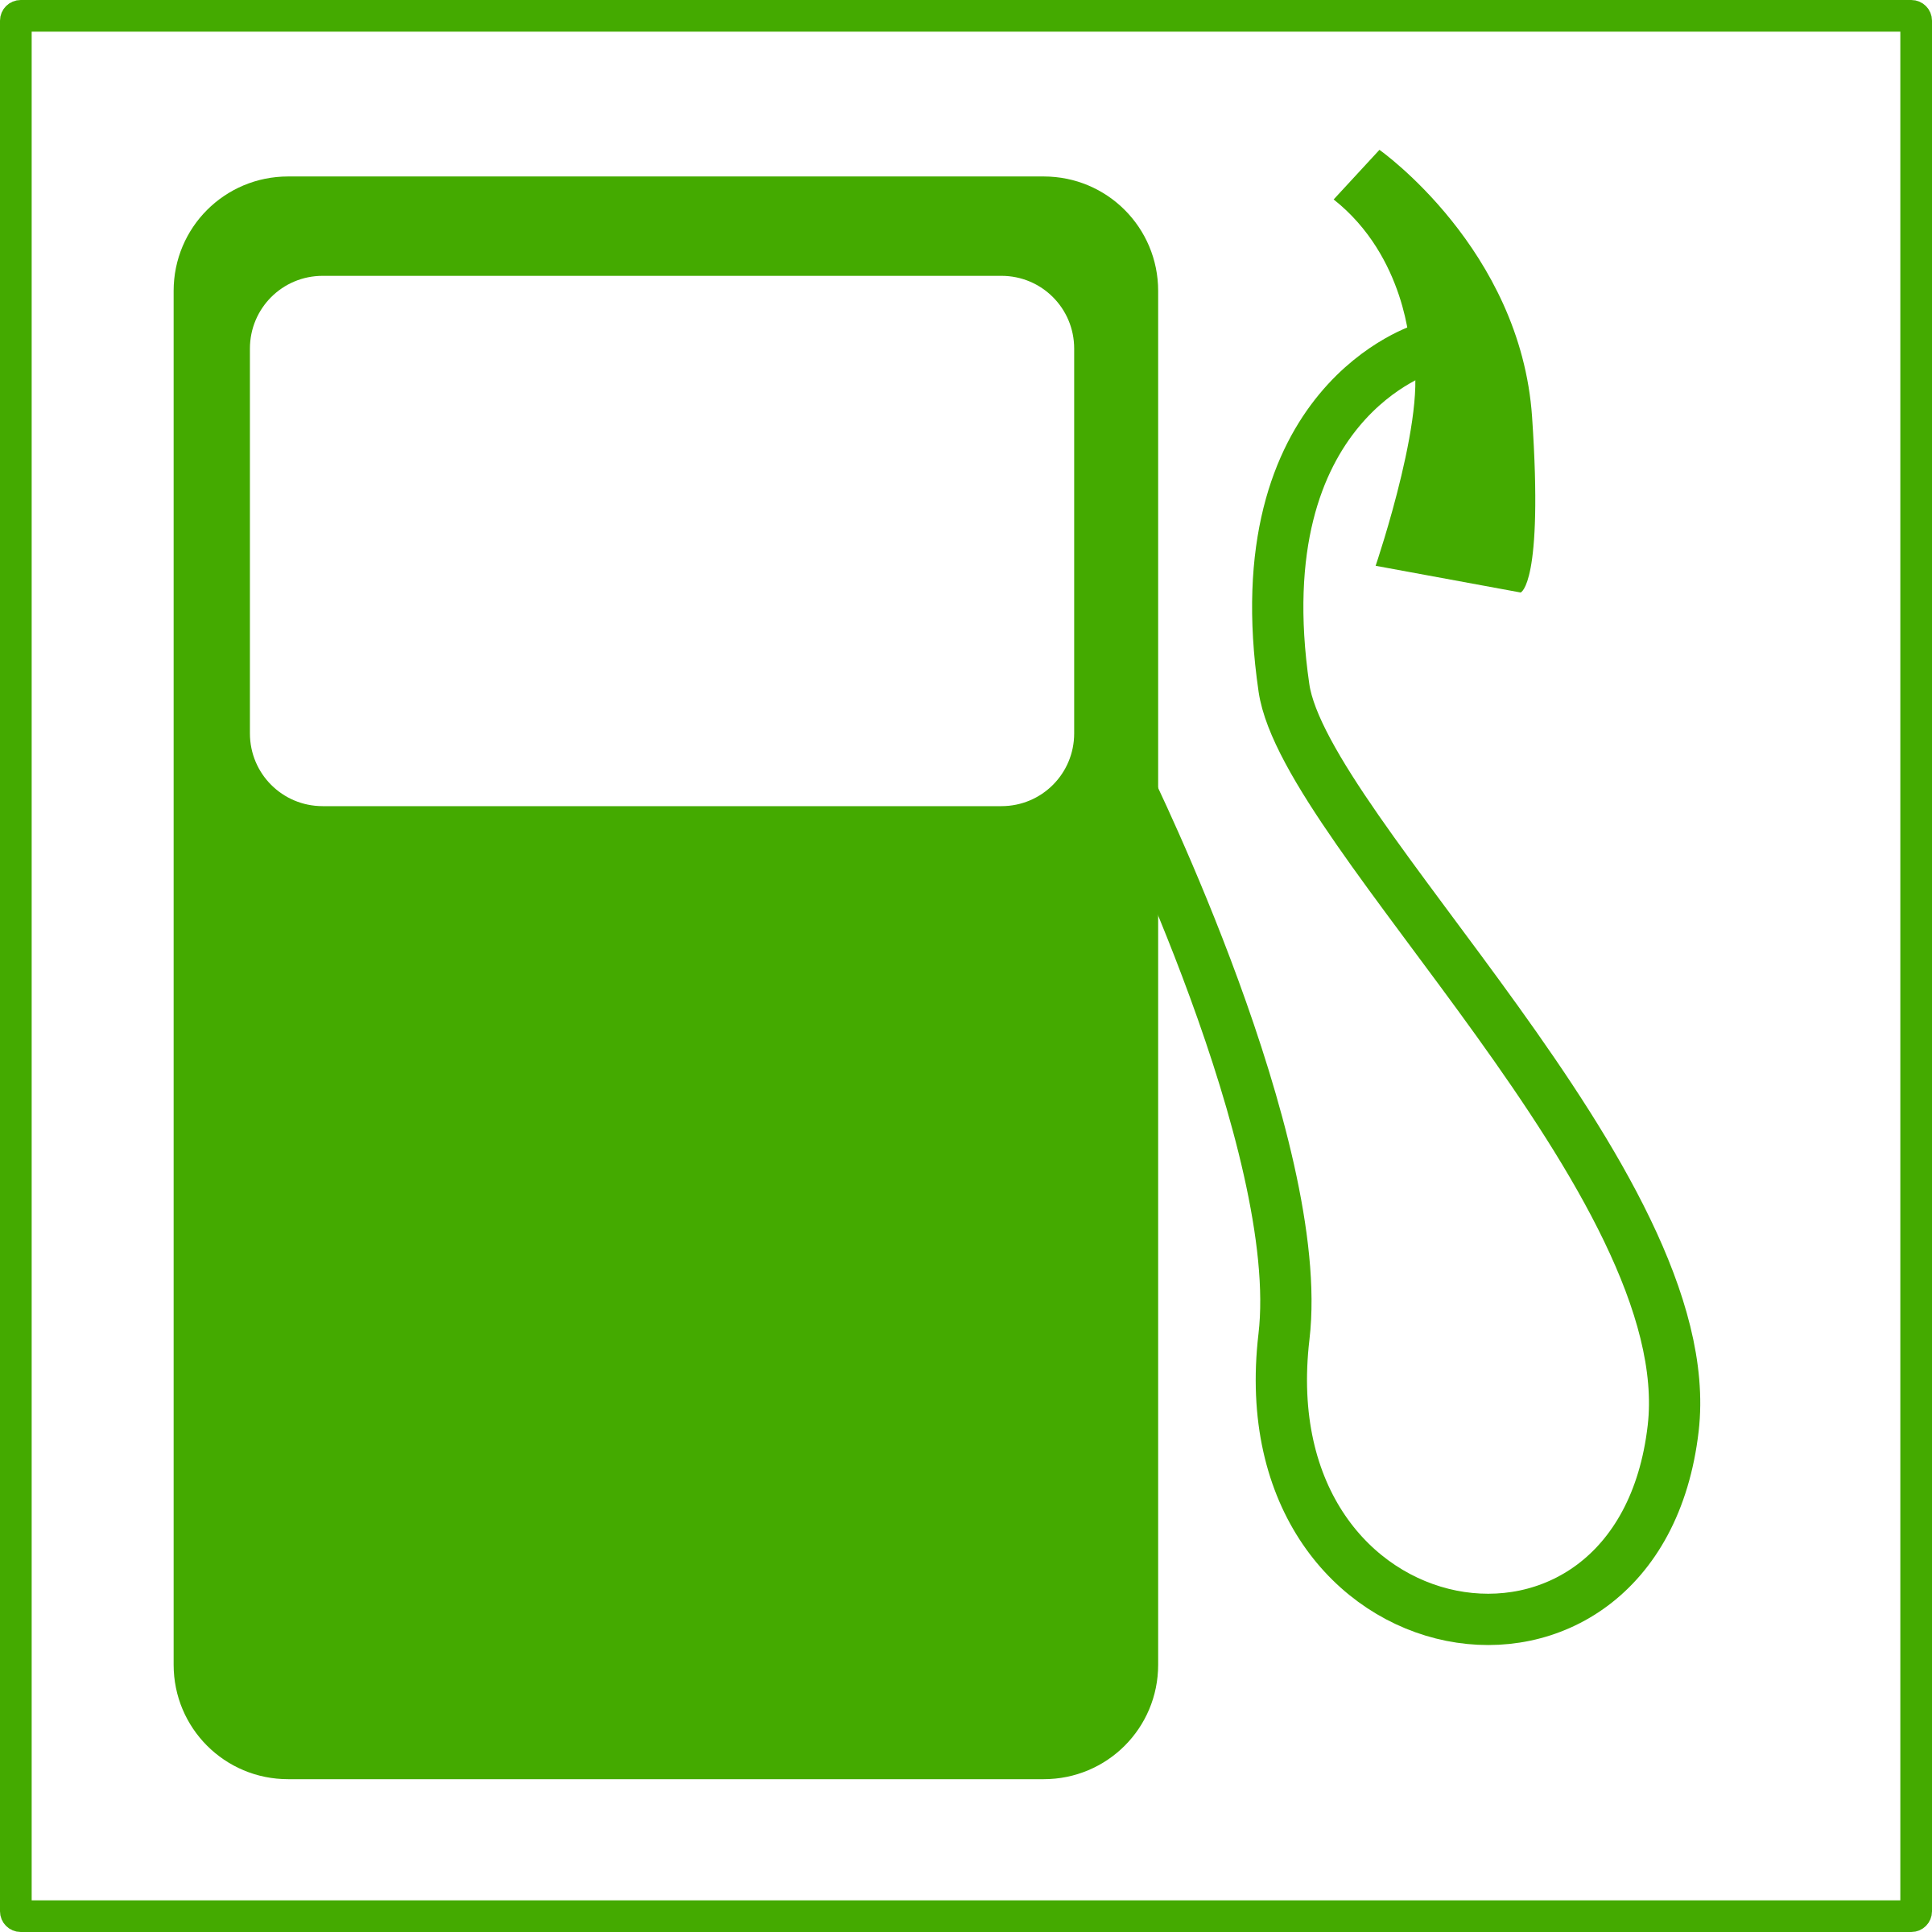 eco green fuel icon by dominiquechappard